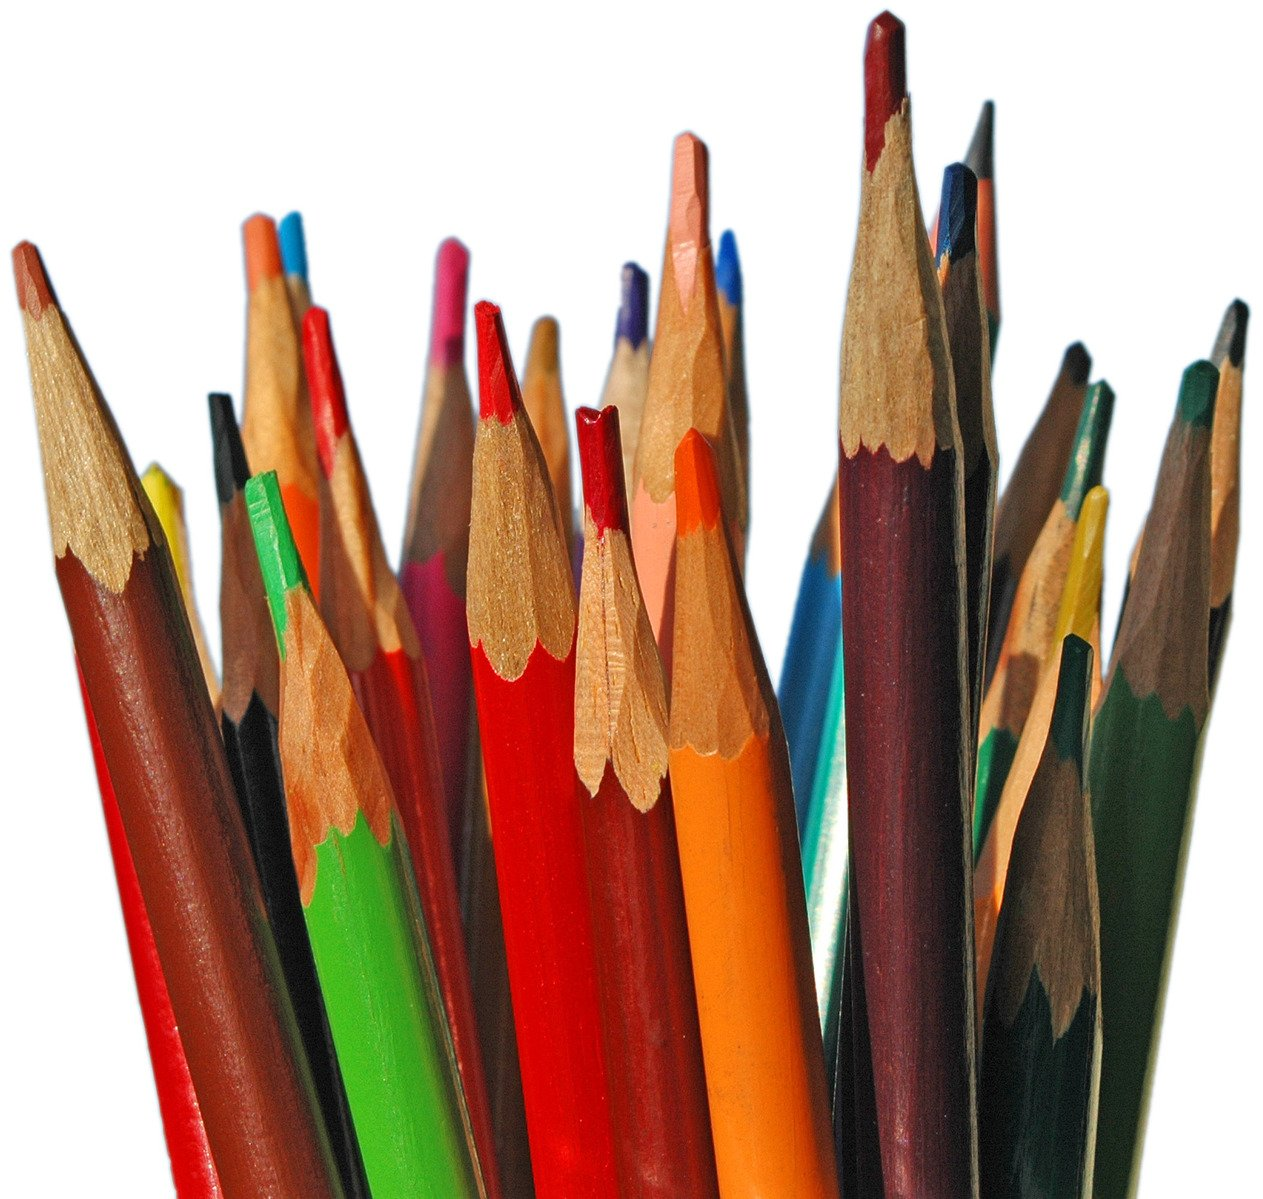 Assorted-color Colored Pencils · Free Stock Photo